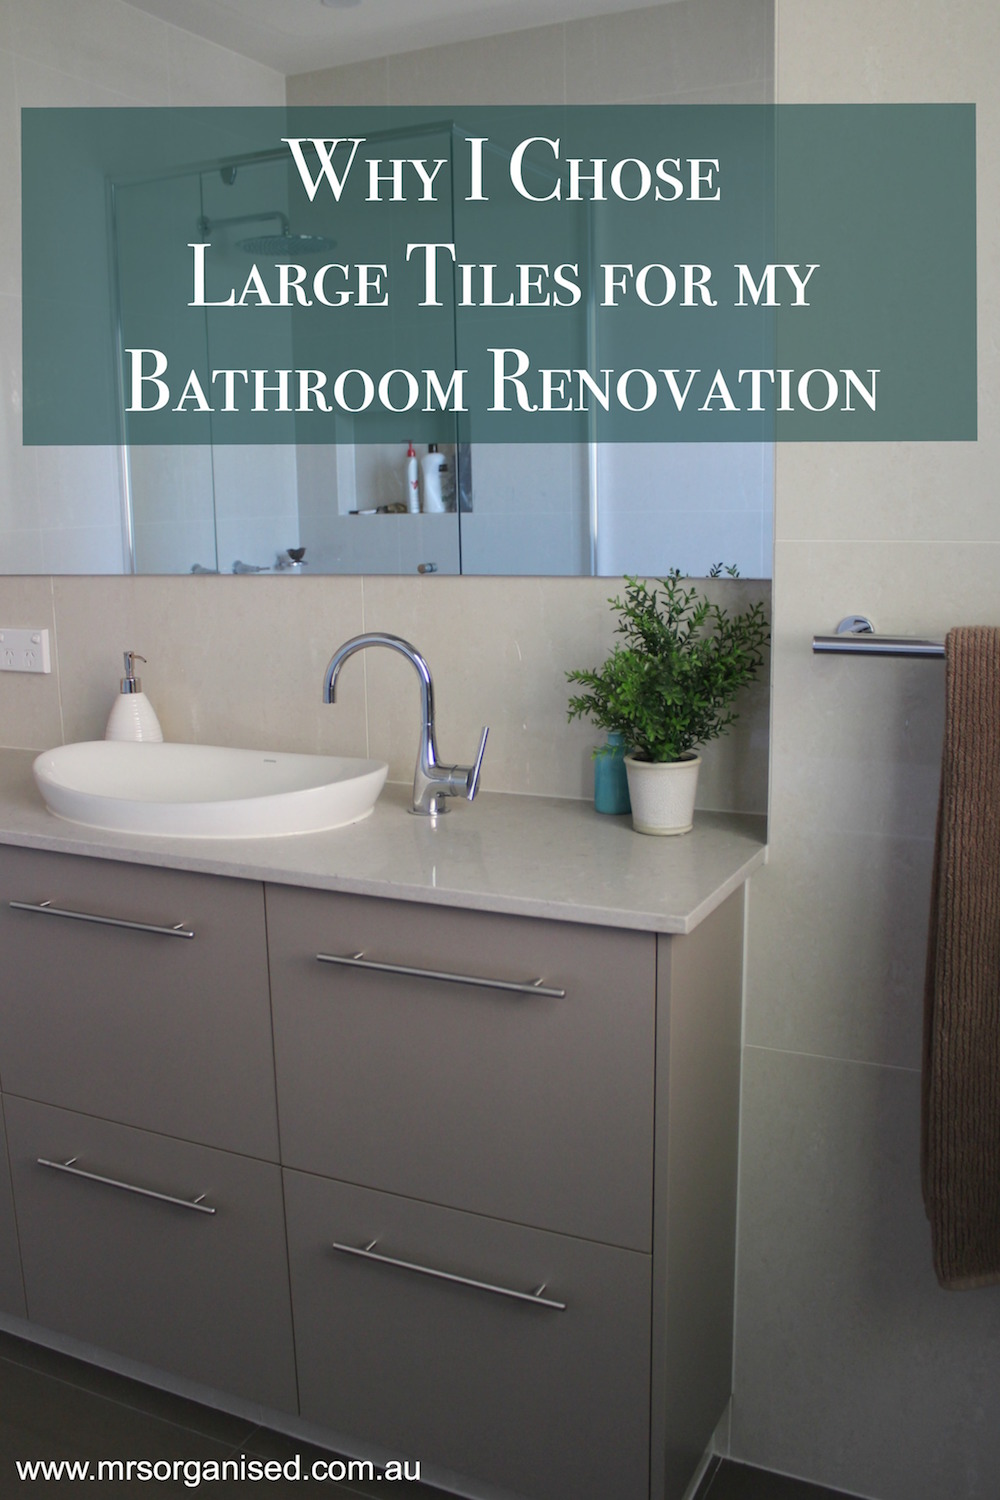 Why I Chose Large Tiles For My Bathroom Renovation